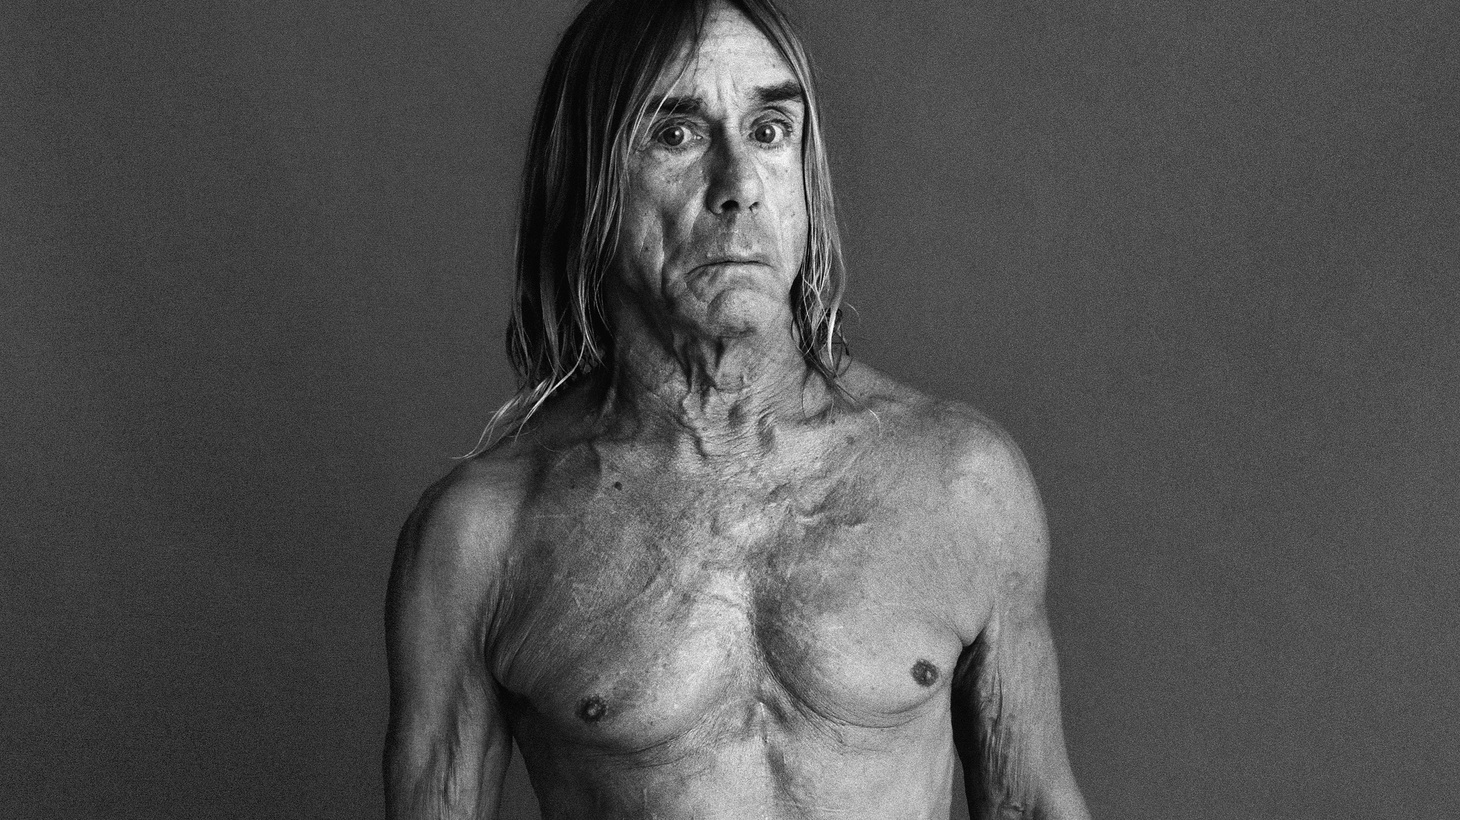 Rock legend Iggy Pop lends his honey-toned dusty vocals (reminiscent of classic Leonard Cohen) to the theme of the film Gold.